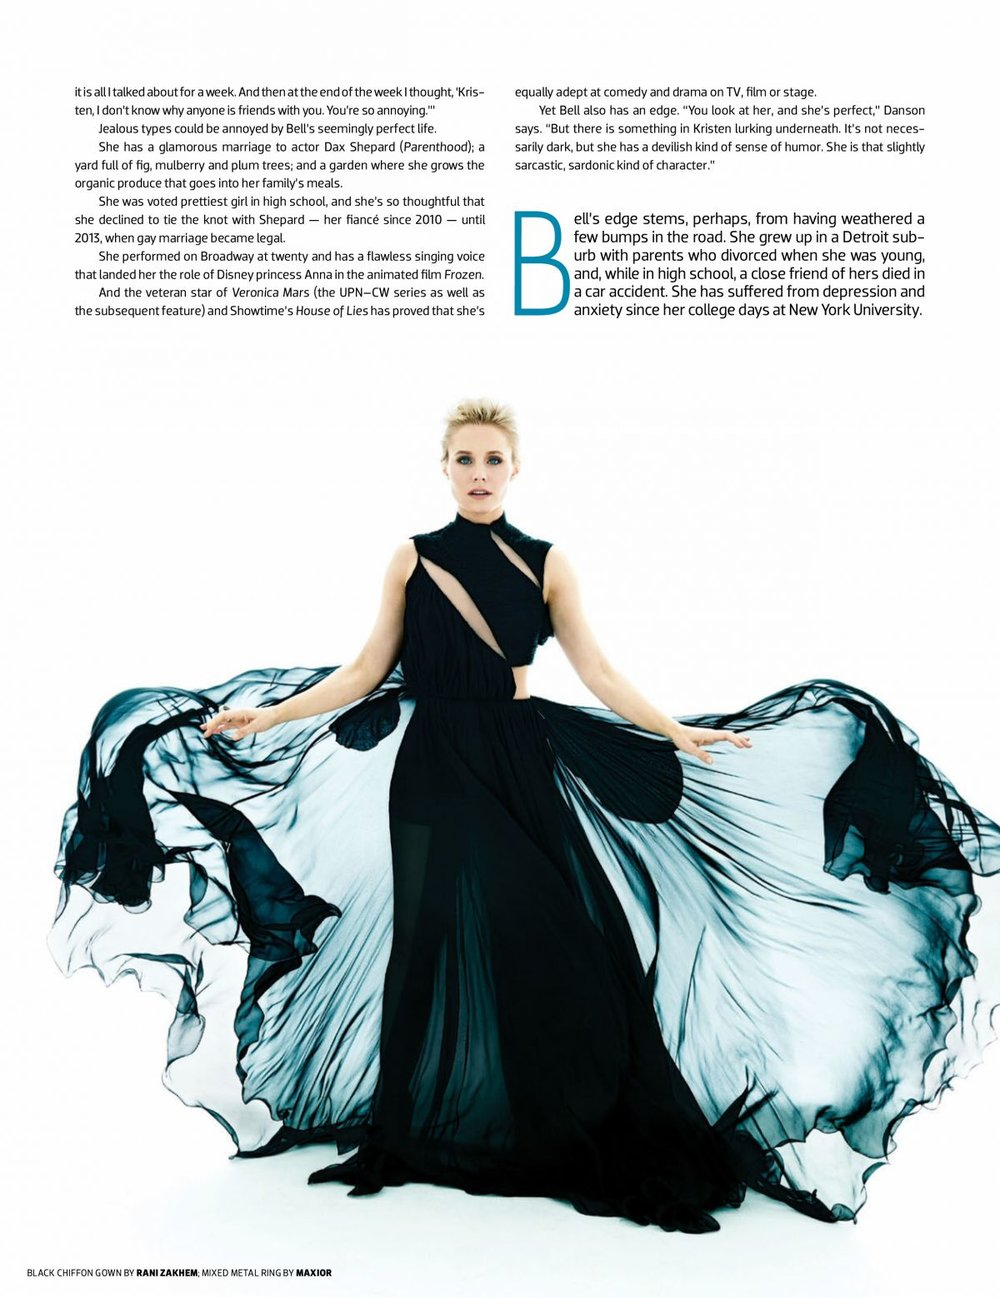 kristen-bell-in-emmy-magazine-issue-no.8-2016_3.jpg